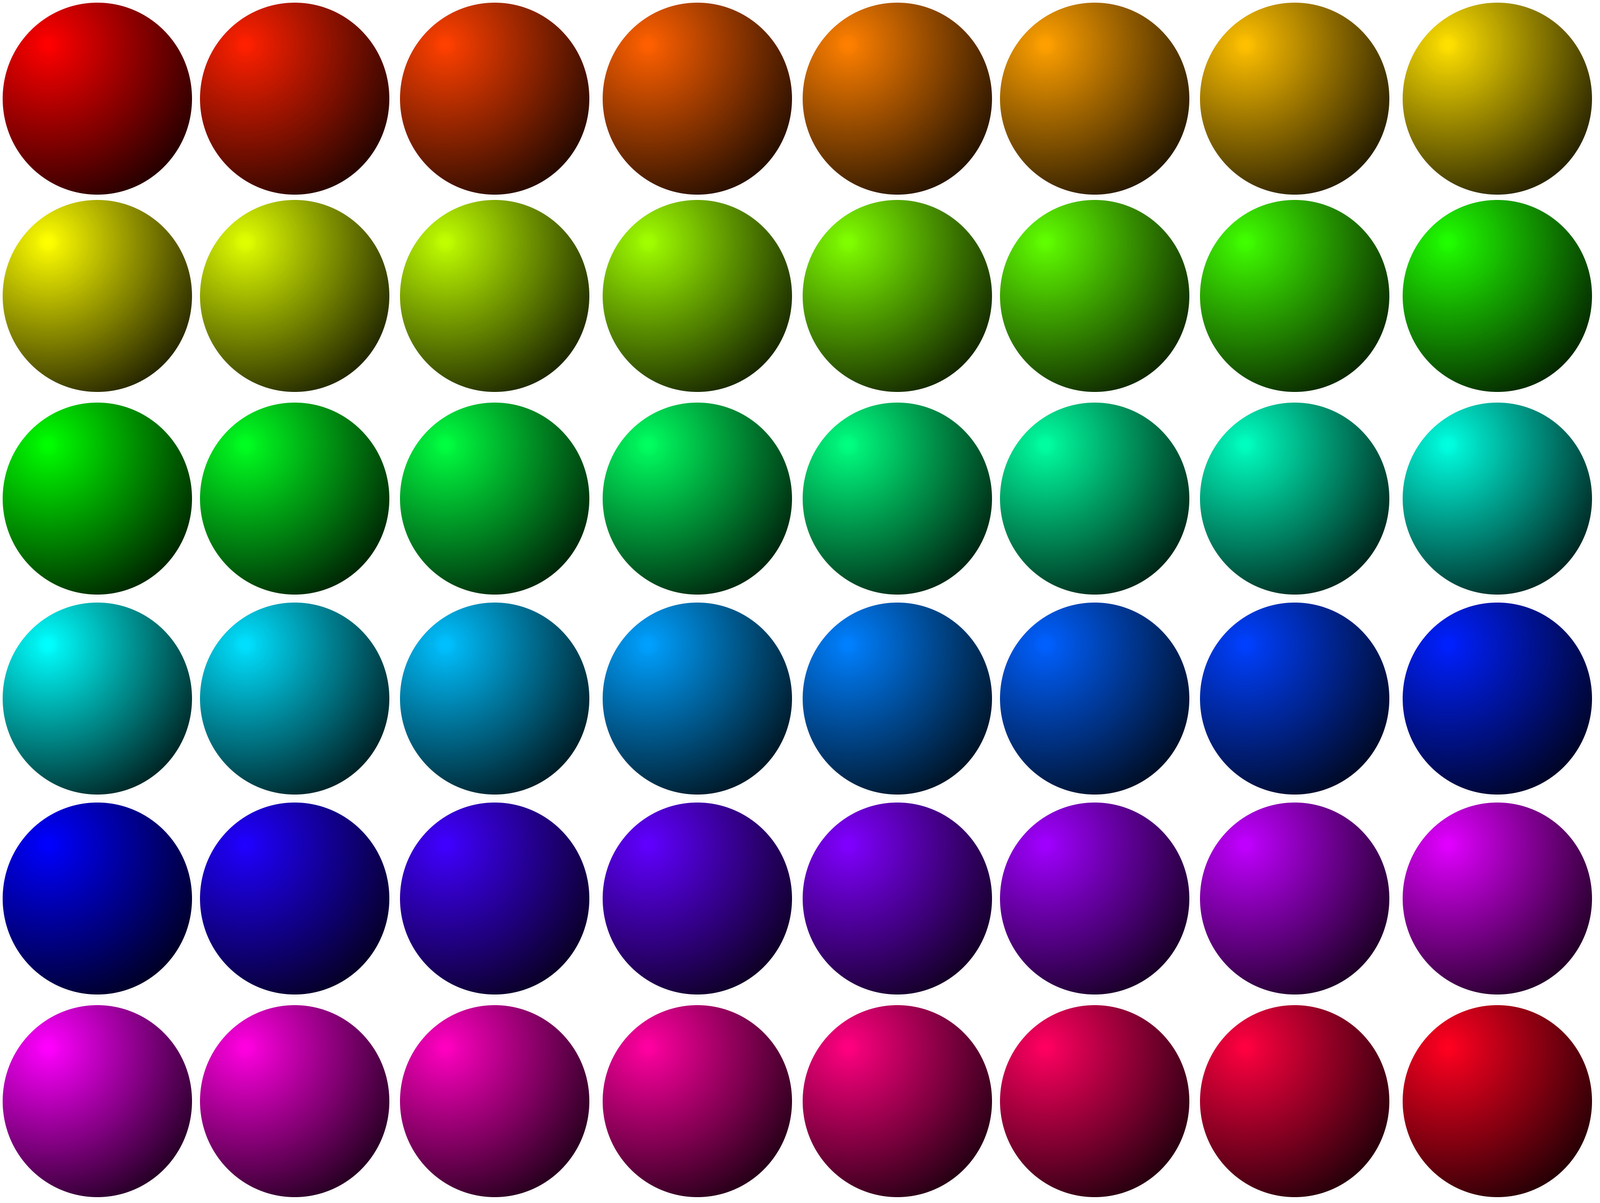 Colored balls clipart clipart library library Color Balls Png, png collections at sccpre.cat clipart library library